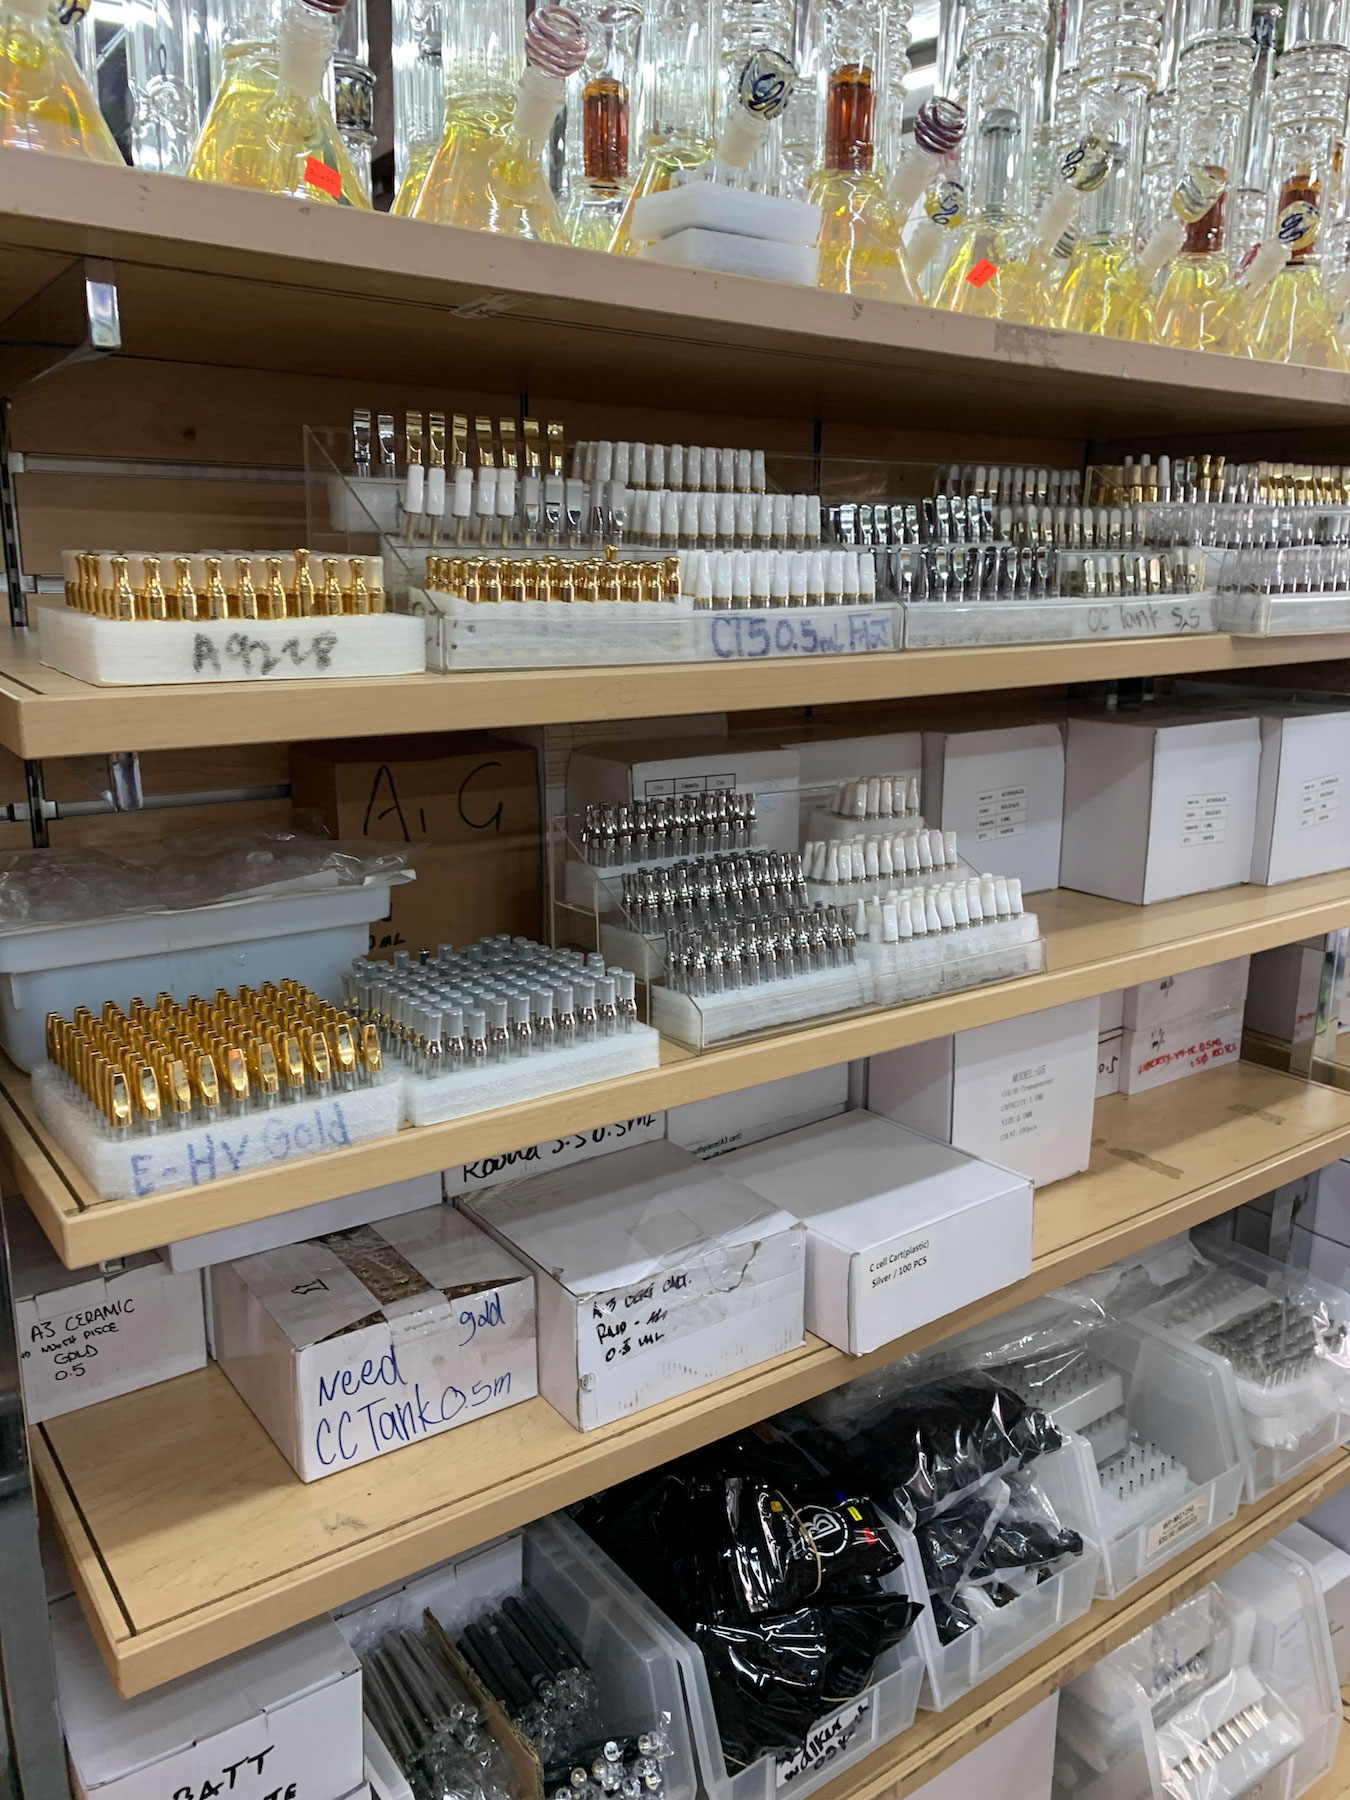 Every type of vape cart, for wholesale in downtown LA. (David Downs/Leafly)